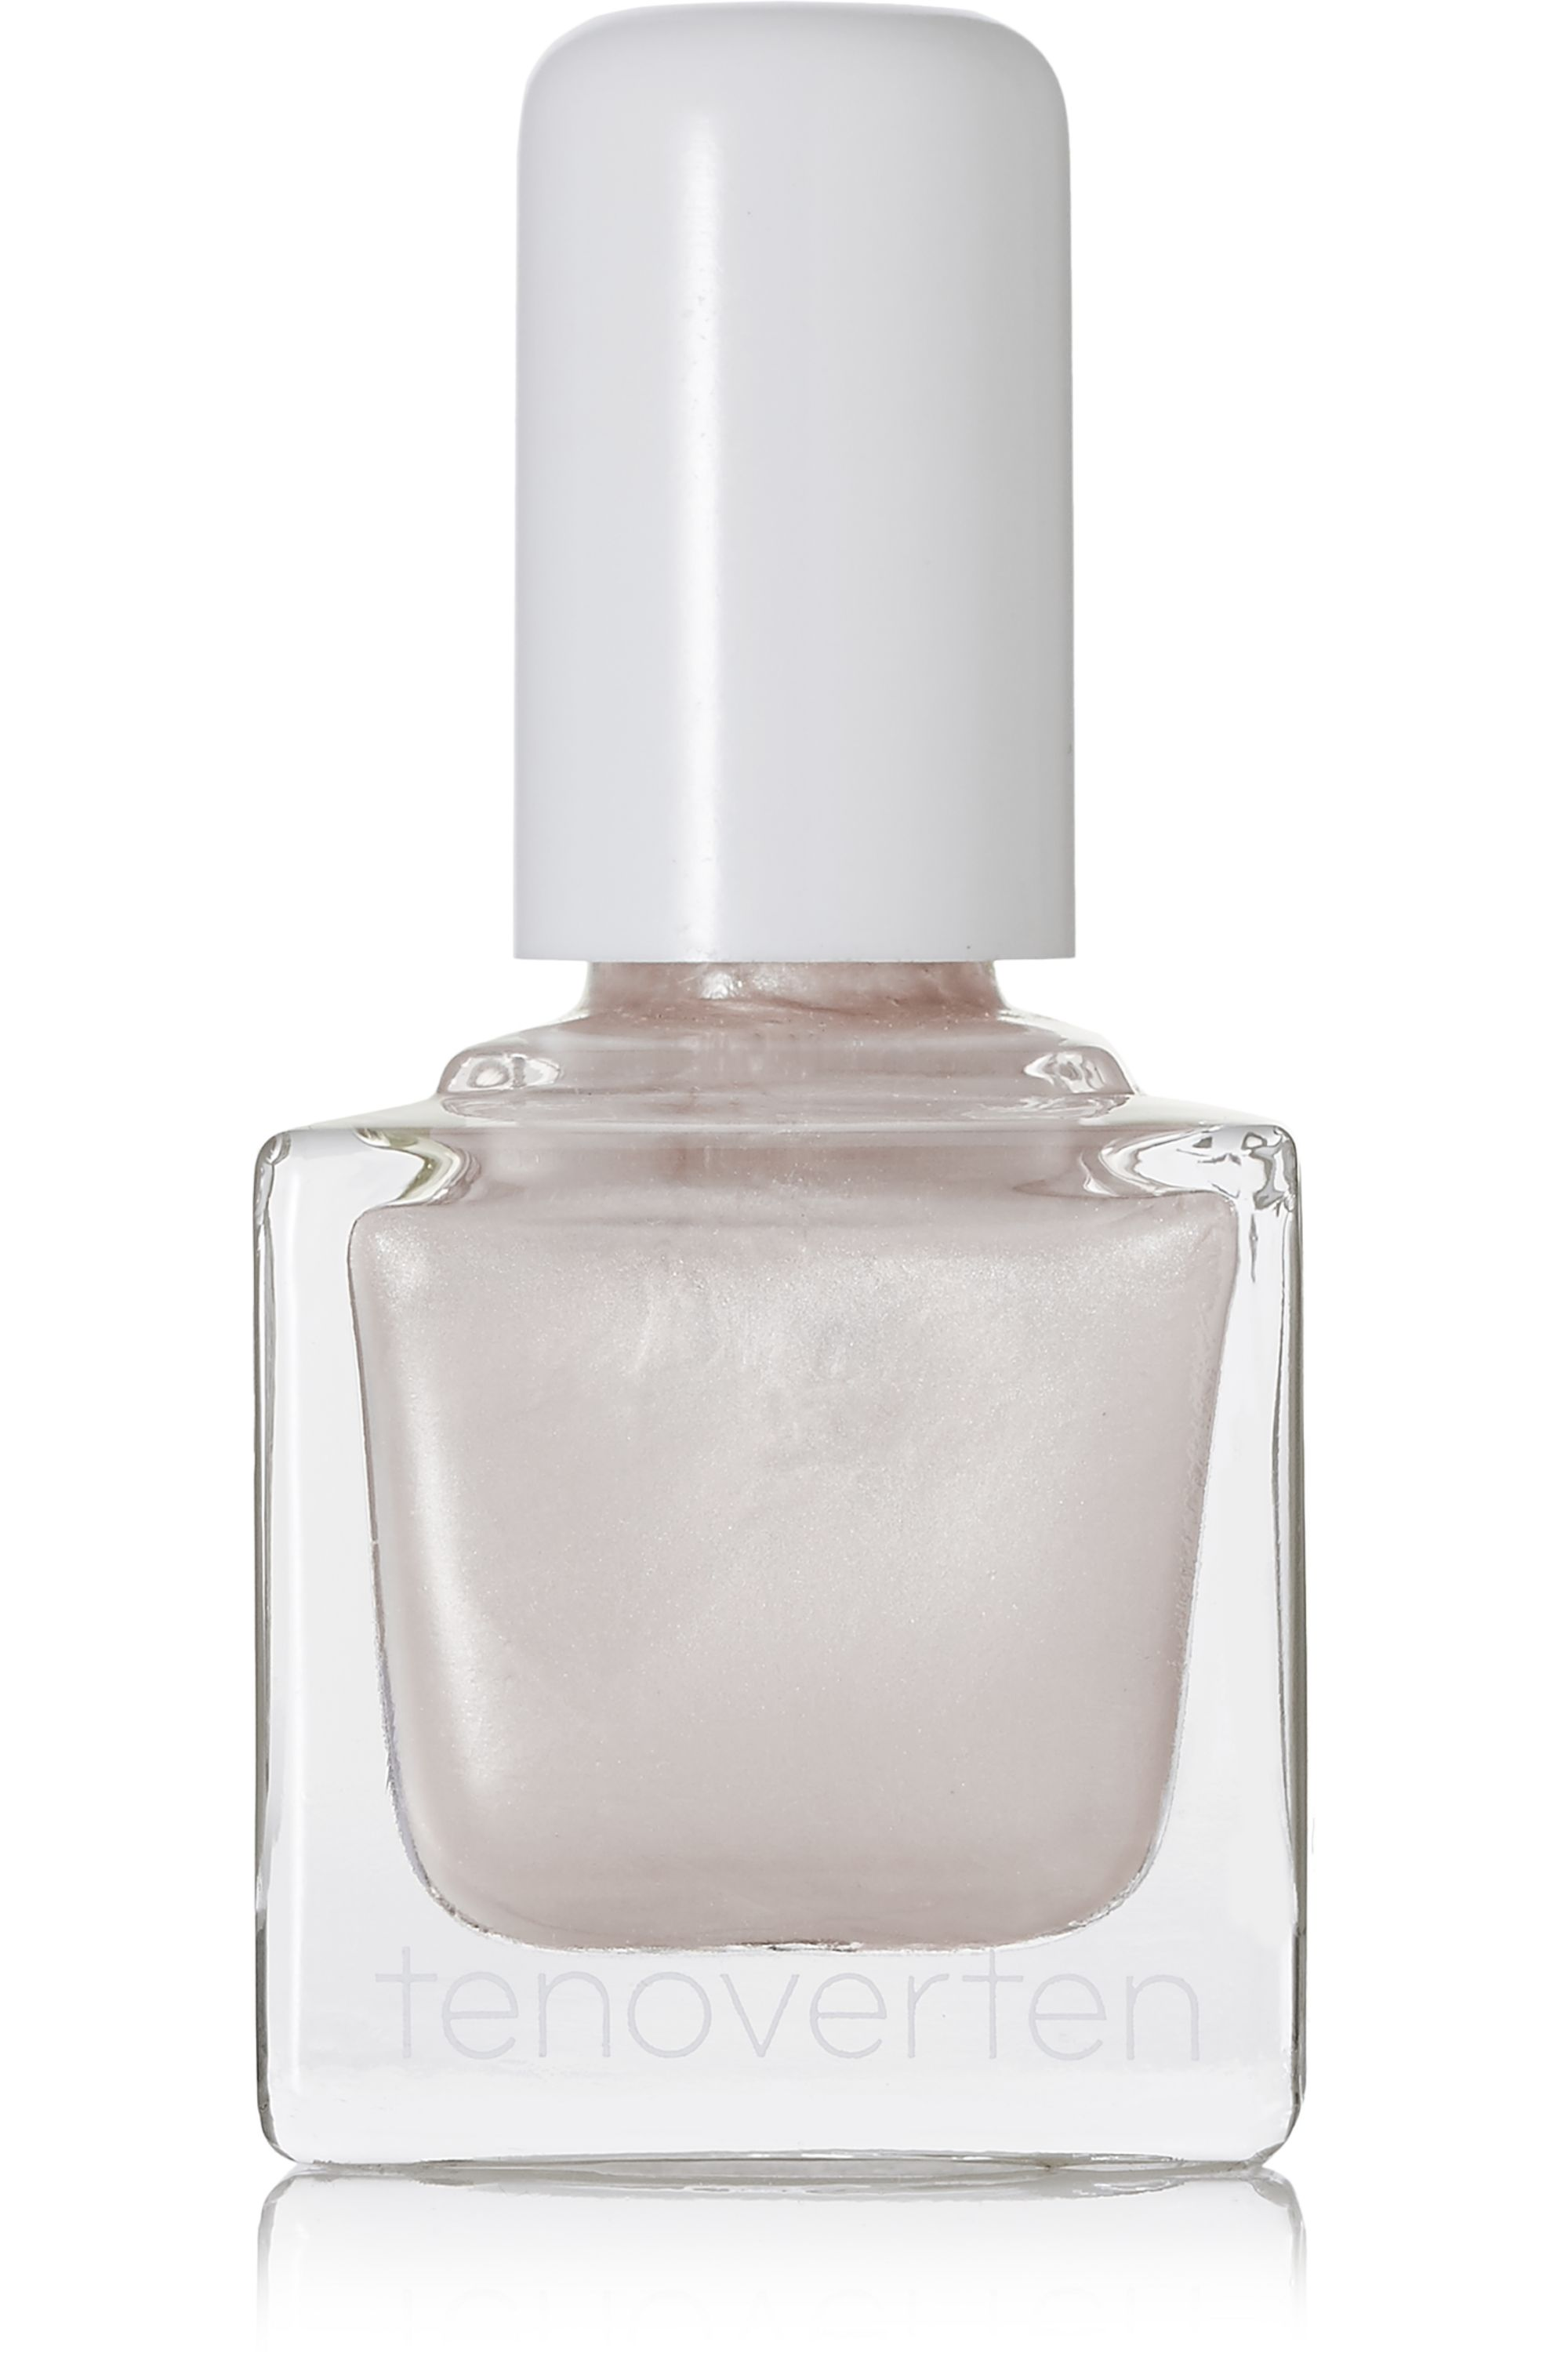 TenOverTen Nail Polish - Greenwich 026